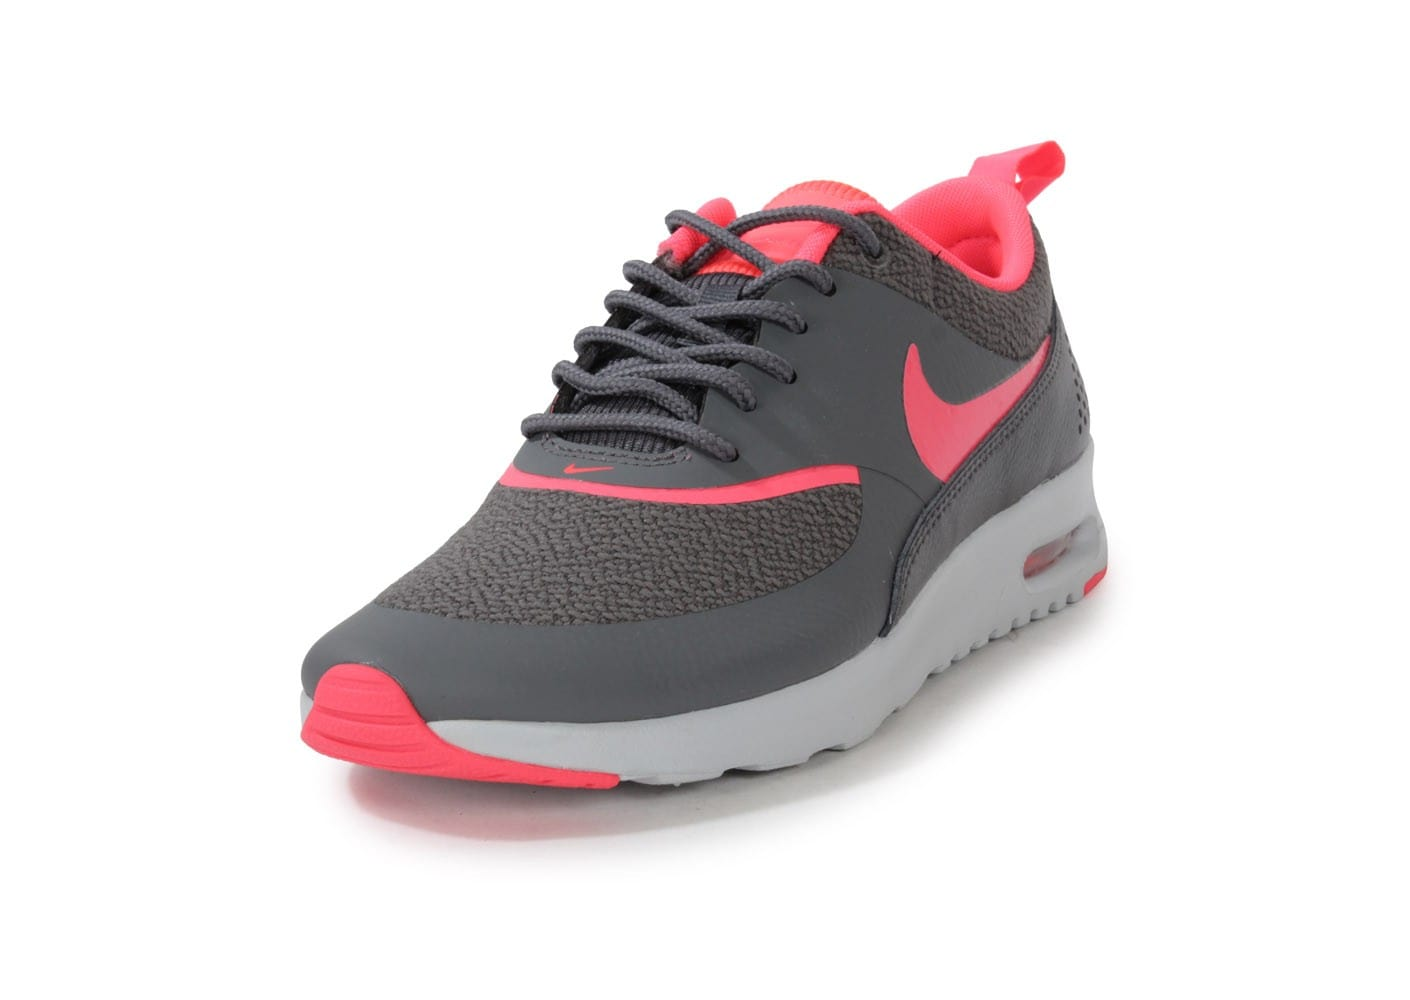 Section spéciale nike air max thea femme gris 7OL50